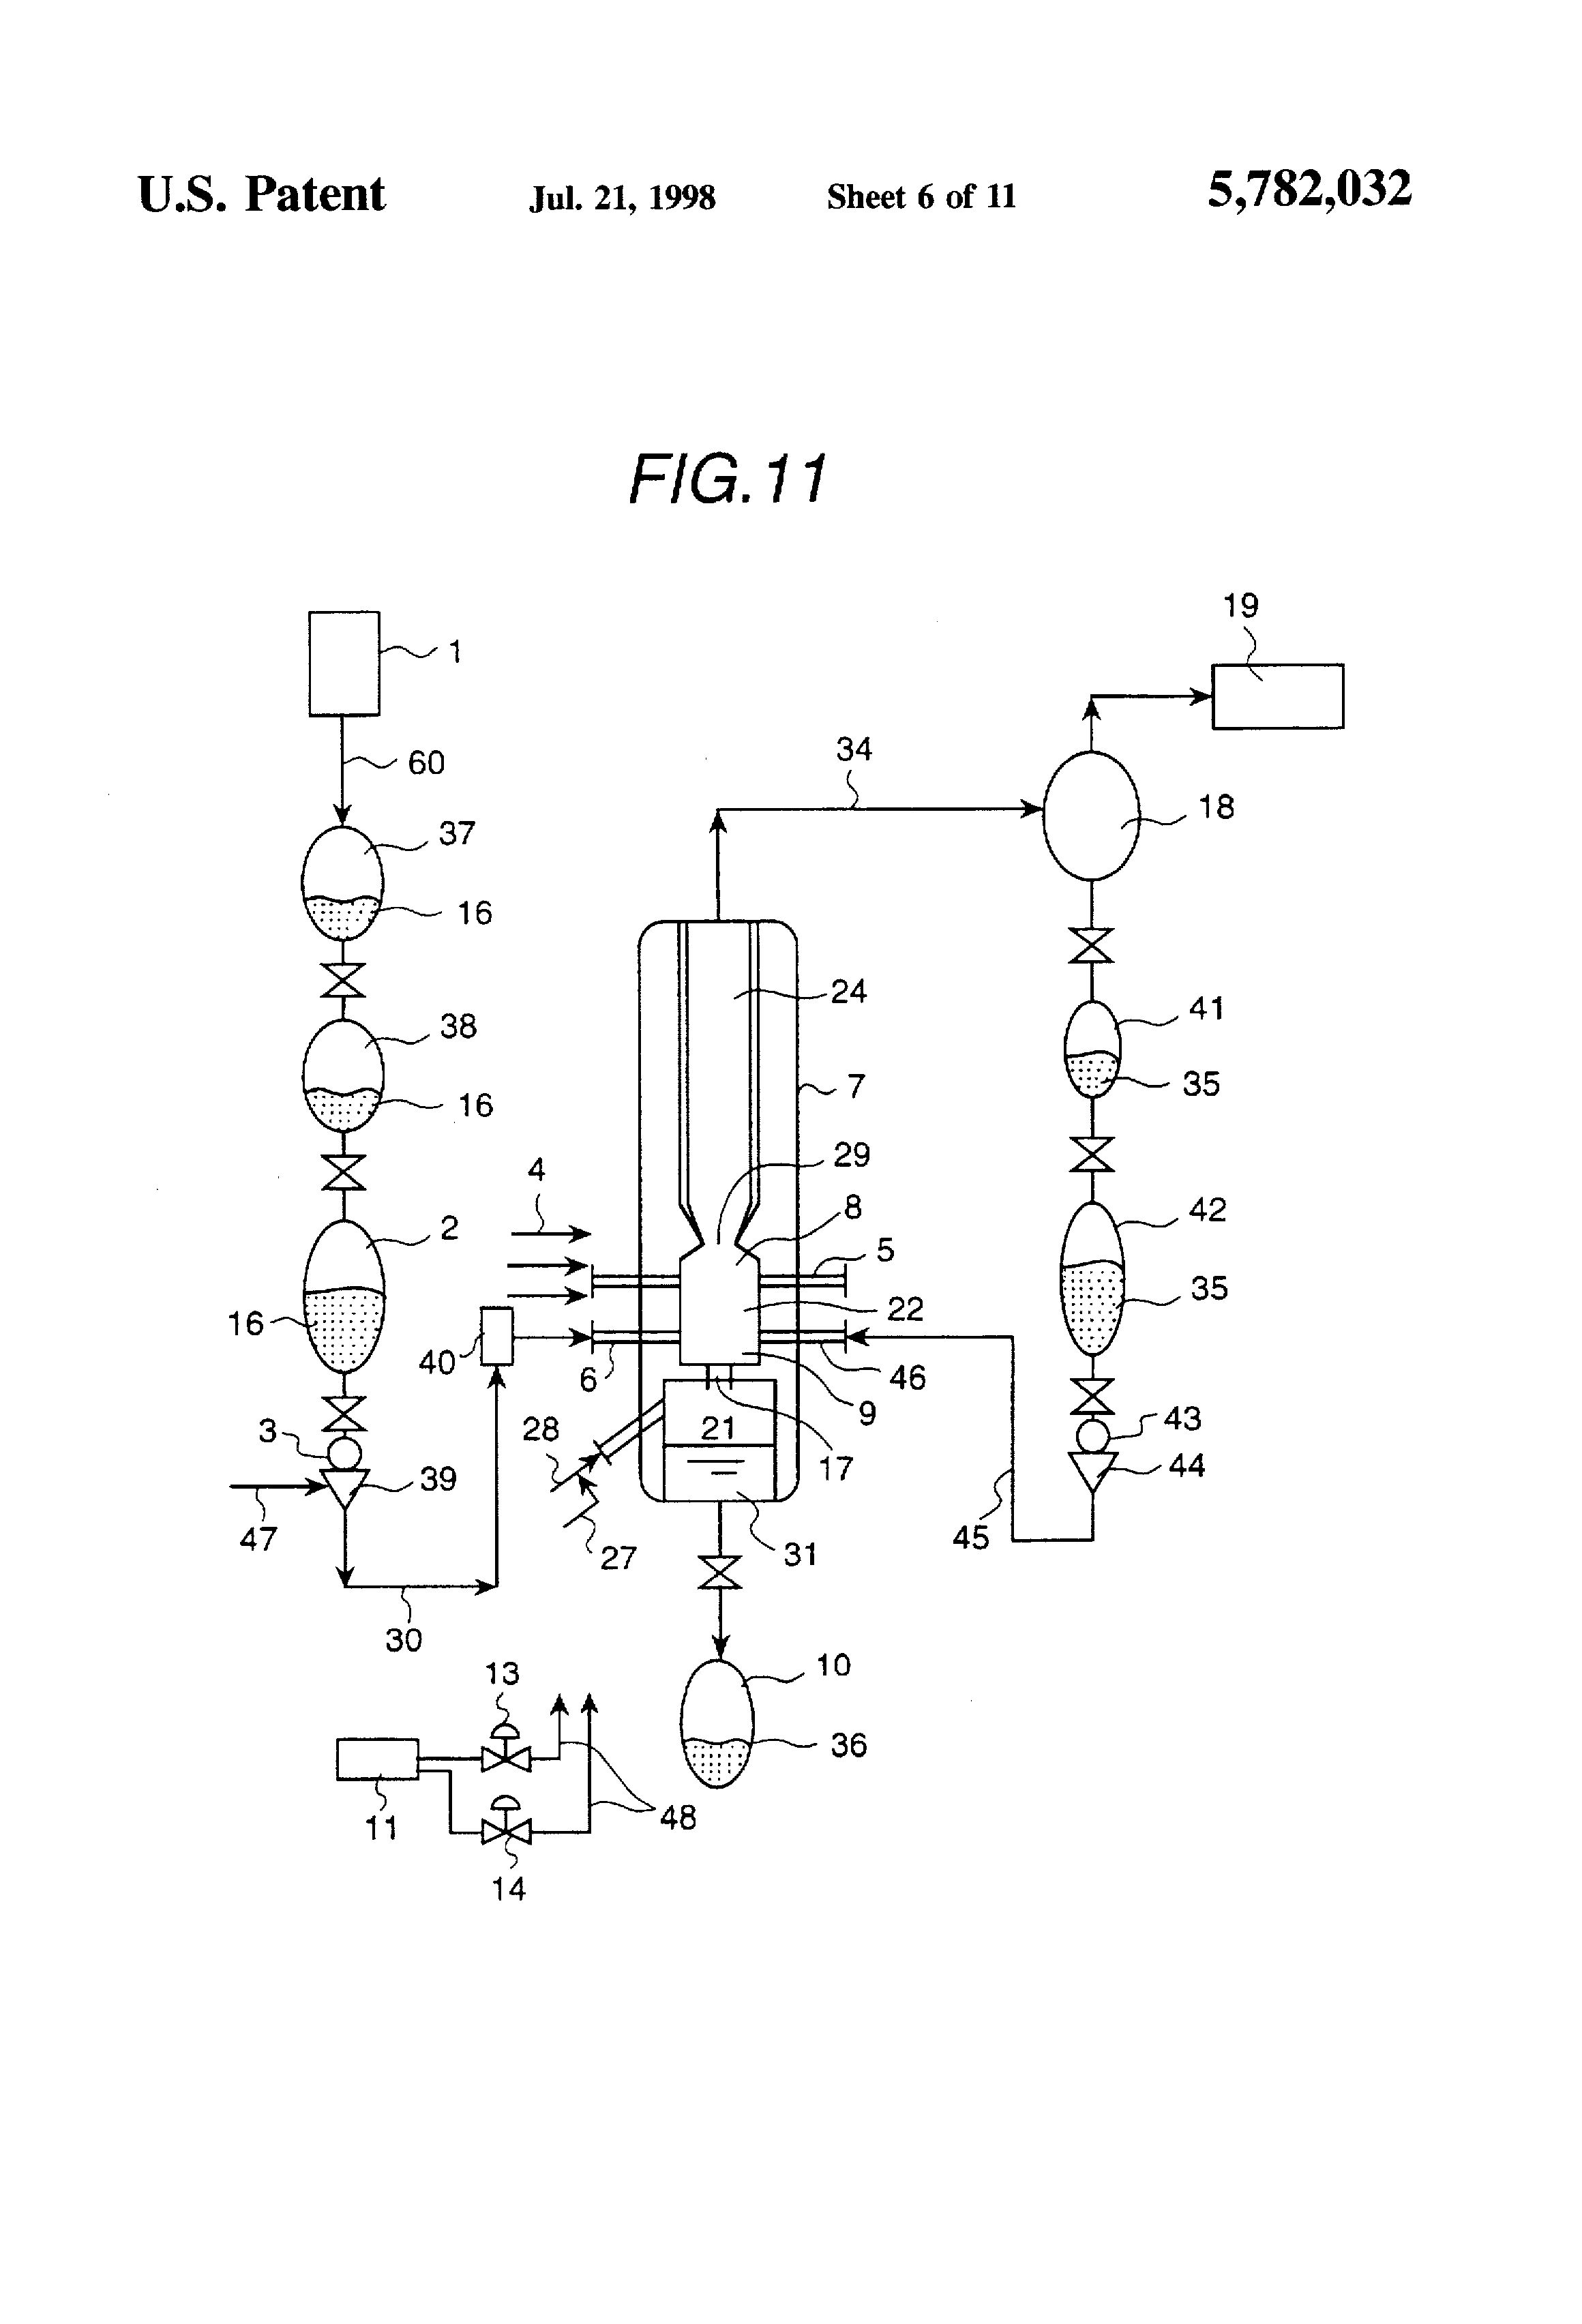 Slag Cross Section : Patent us coal gasification furnace with a slag